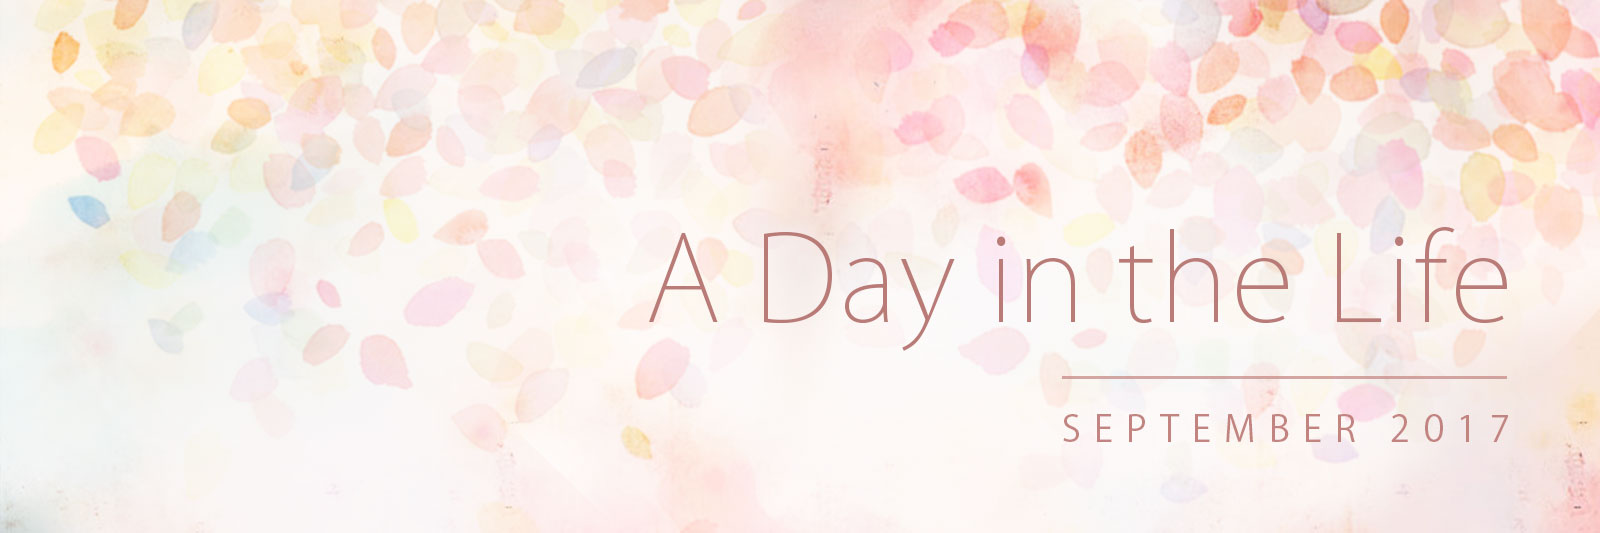 Banner for 'A Day in the Life': September 2017